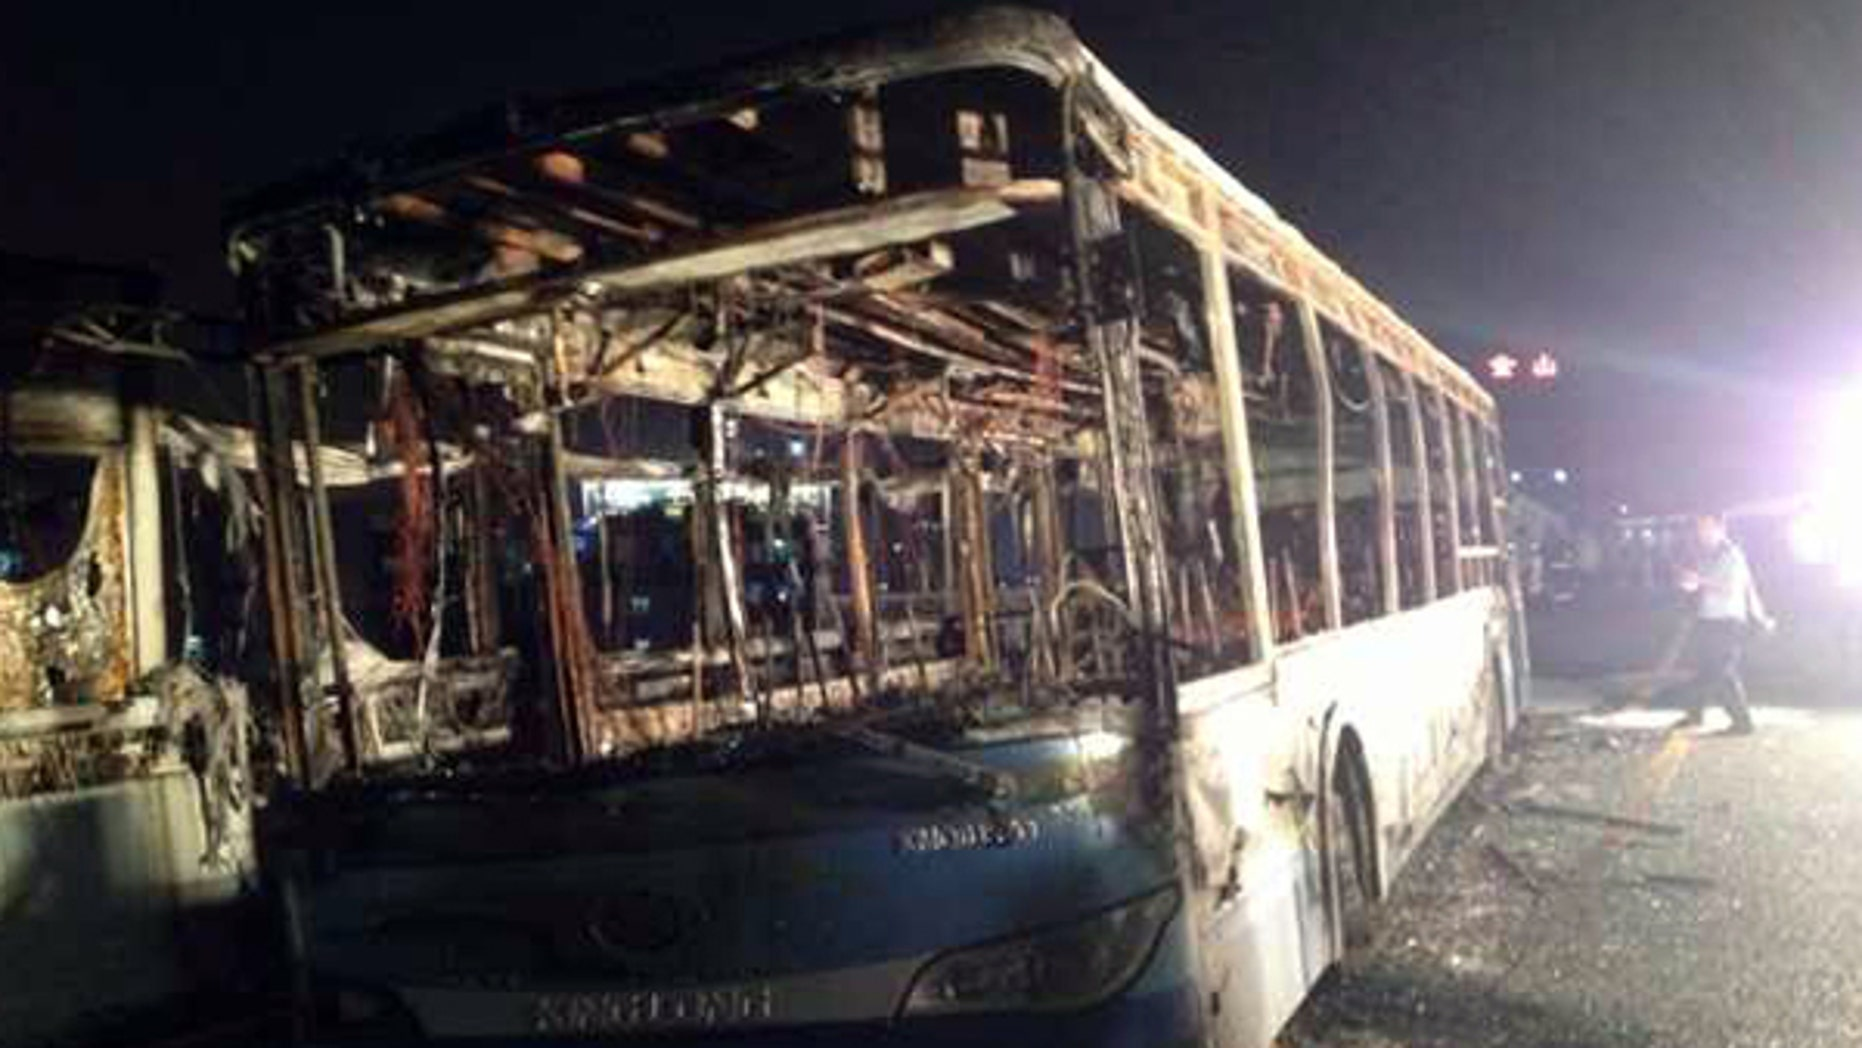 June 7, 2013: This image made with a mobile phone camera released by China's Xinhua News Agency shows the remains of an express bus that burst into flames in Xiamen, southeast China's Fujian Province. The express bus burst into flames on an elevated road in southeastern China on Friday, killing at least 30 people and injuring more than 30, state media reported.